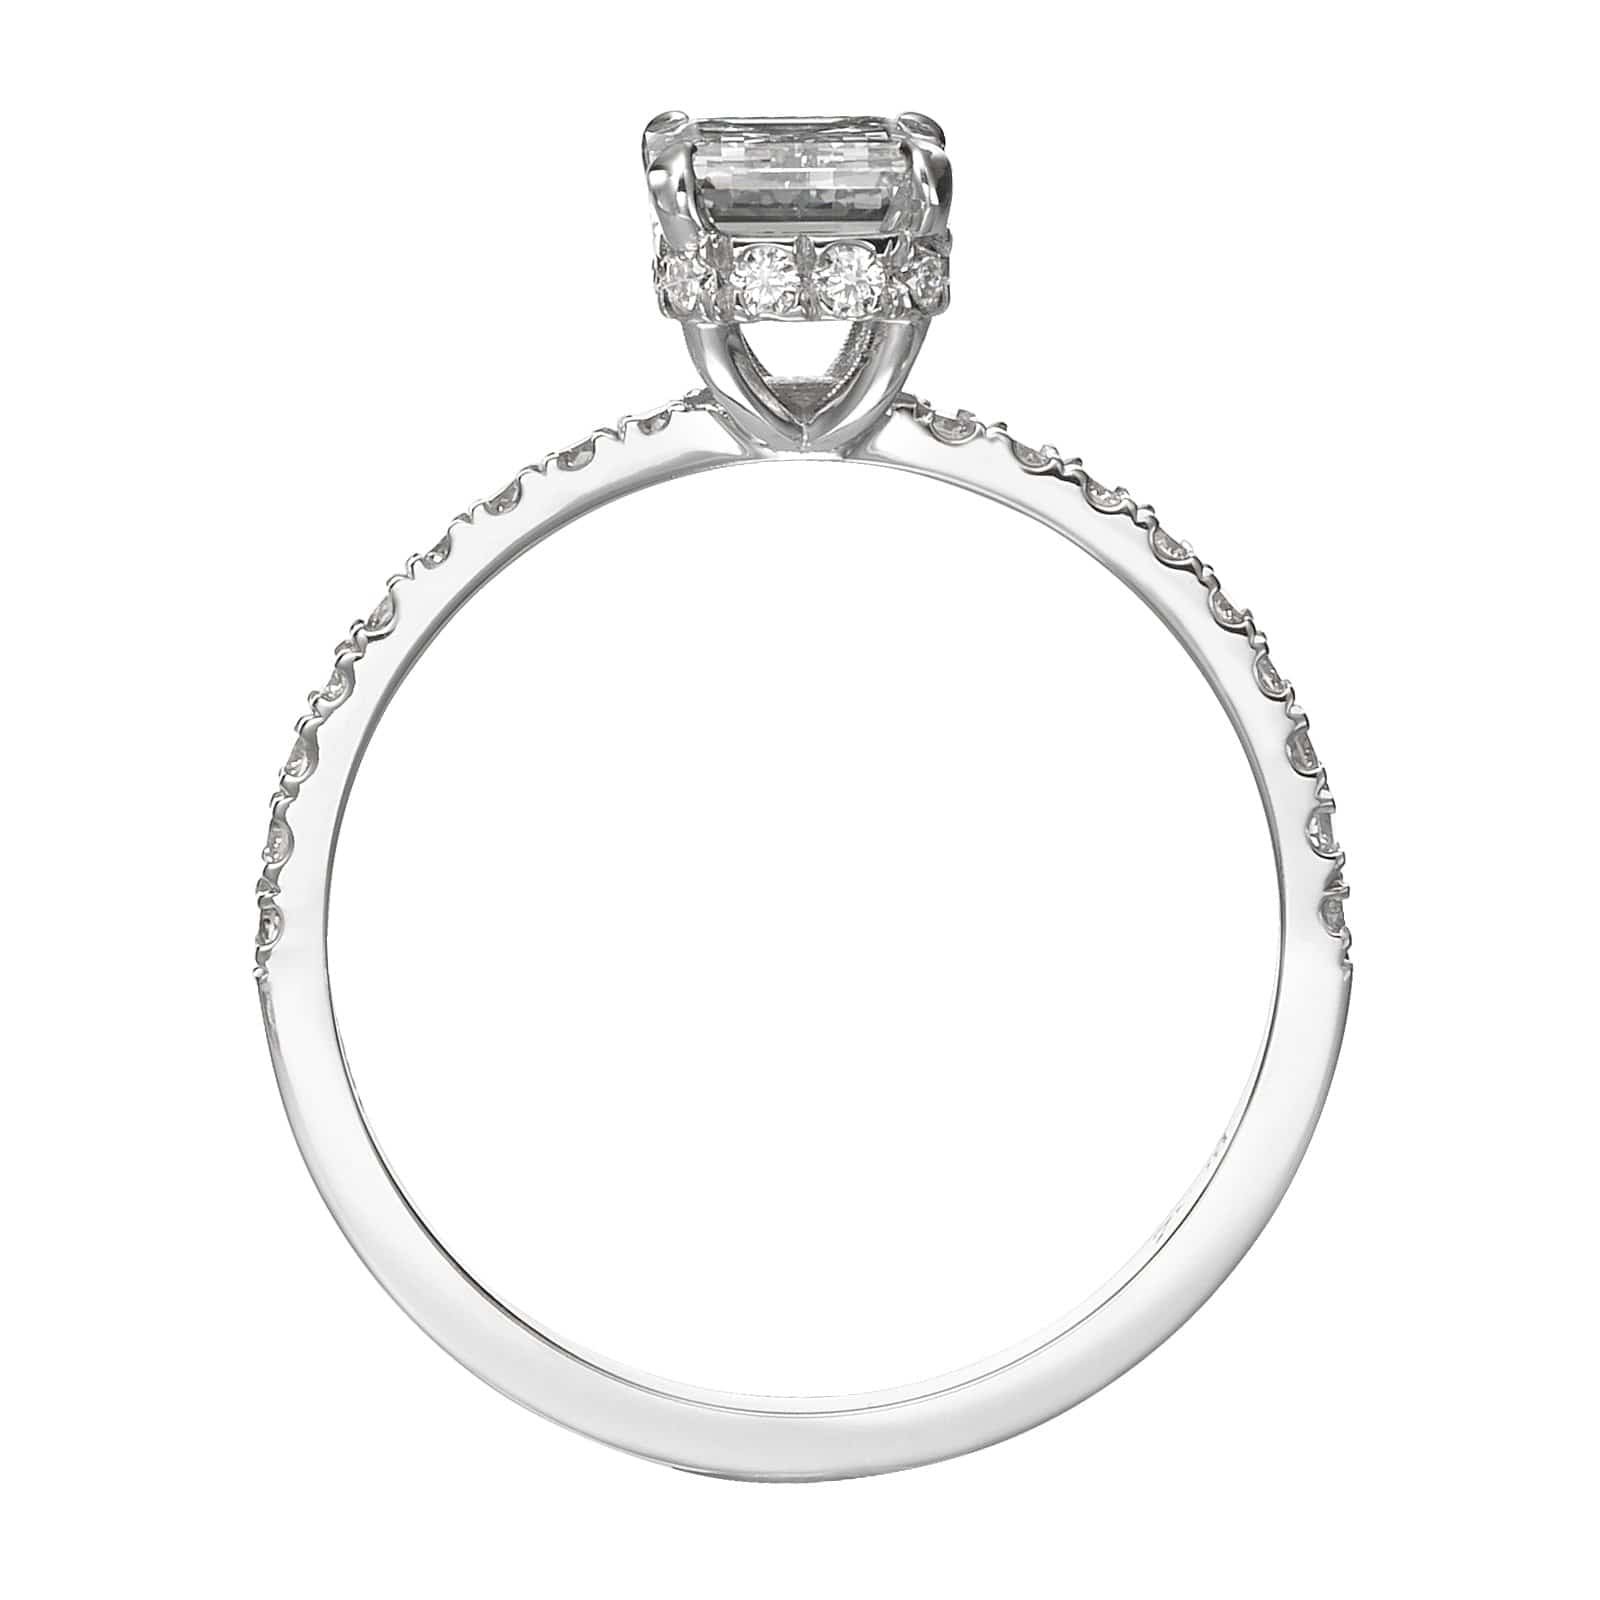 1.56 ct Emerald Cut Diamond Engagement Ring